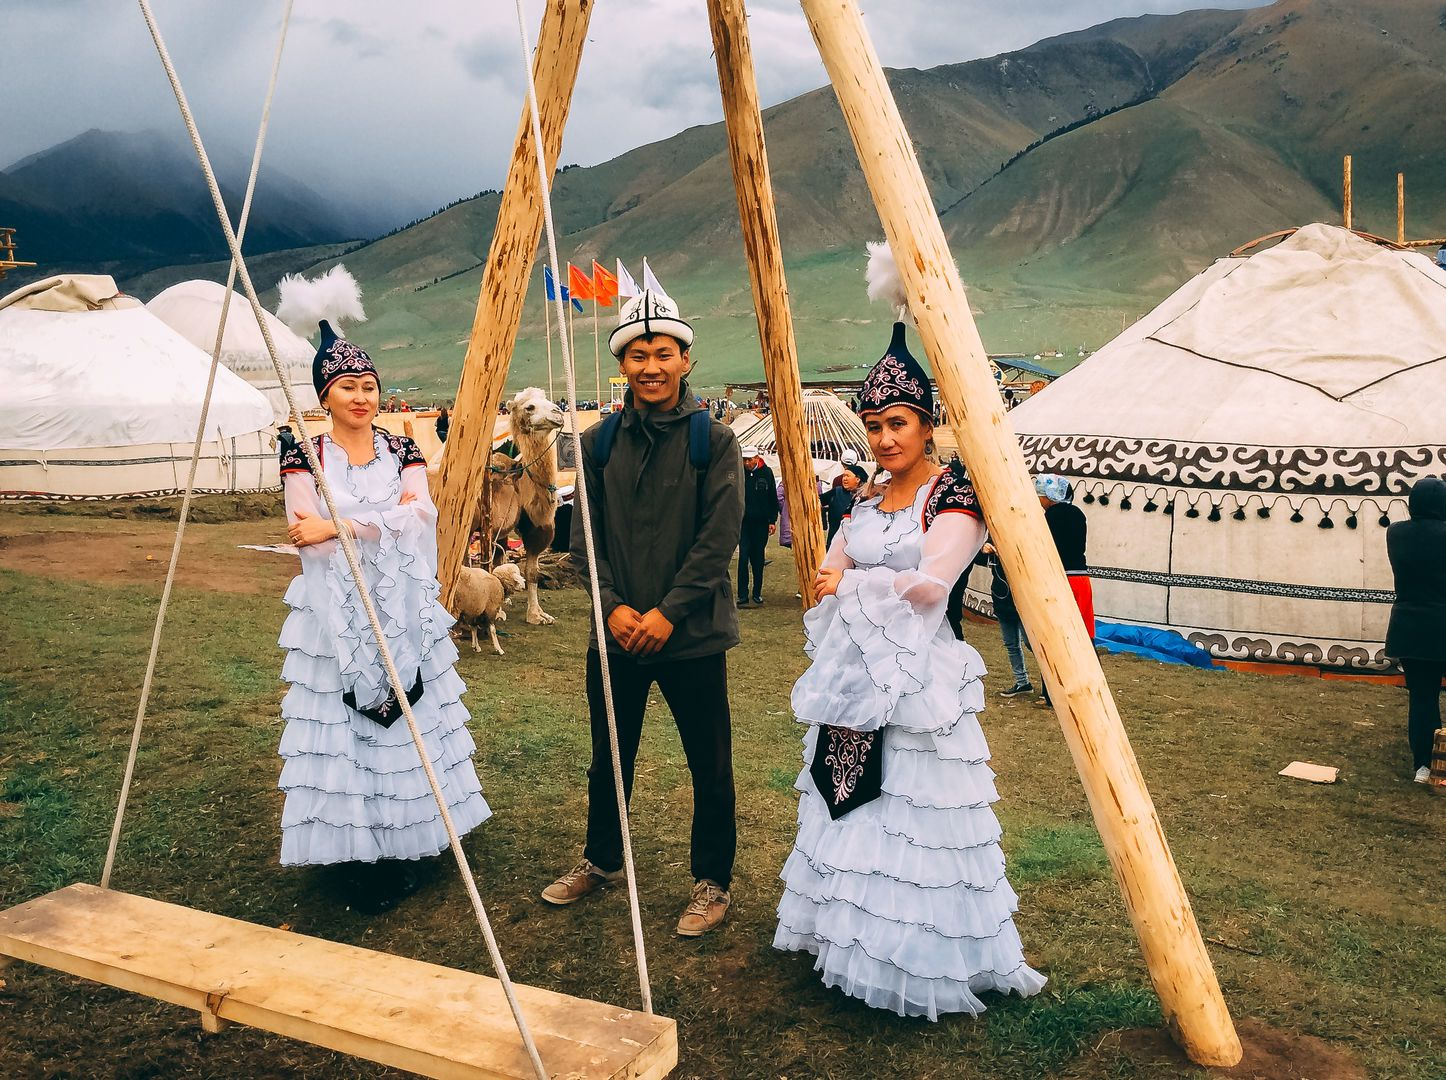 Kyrgyz clothes at the world nomad games